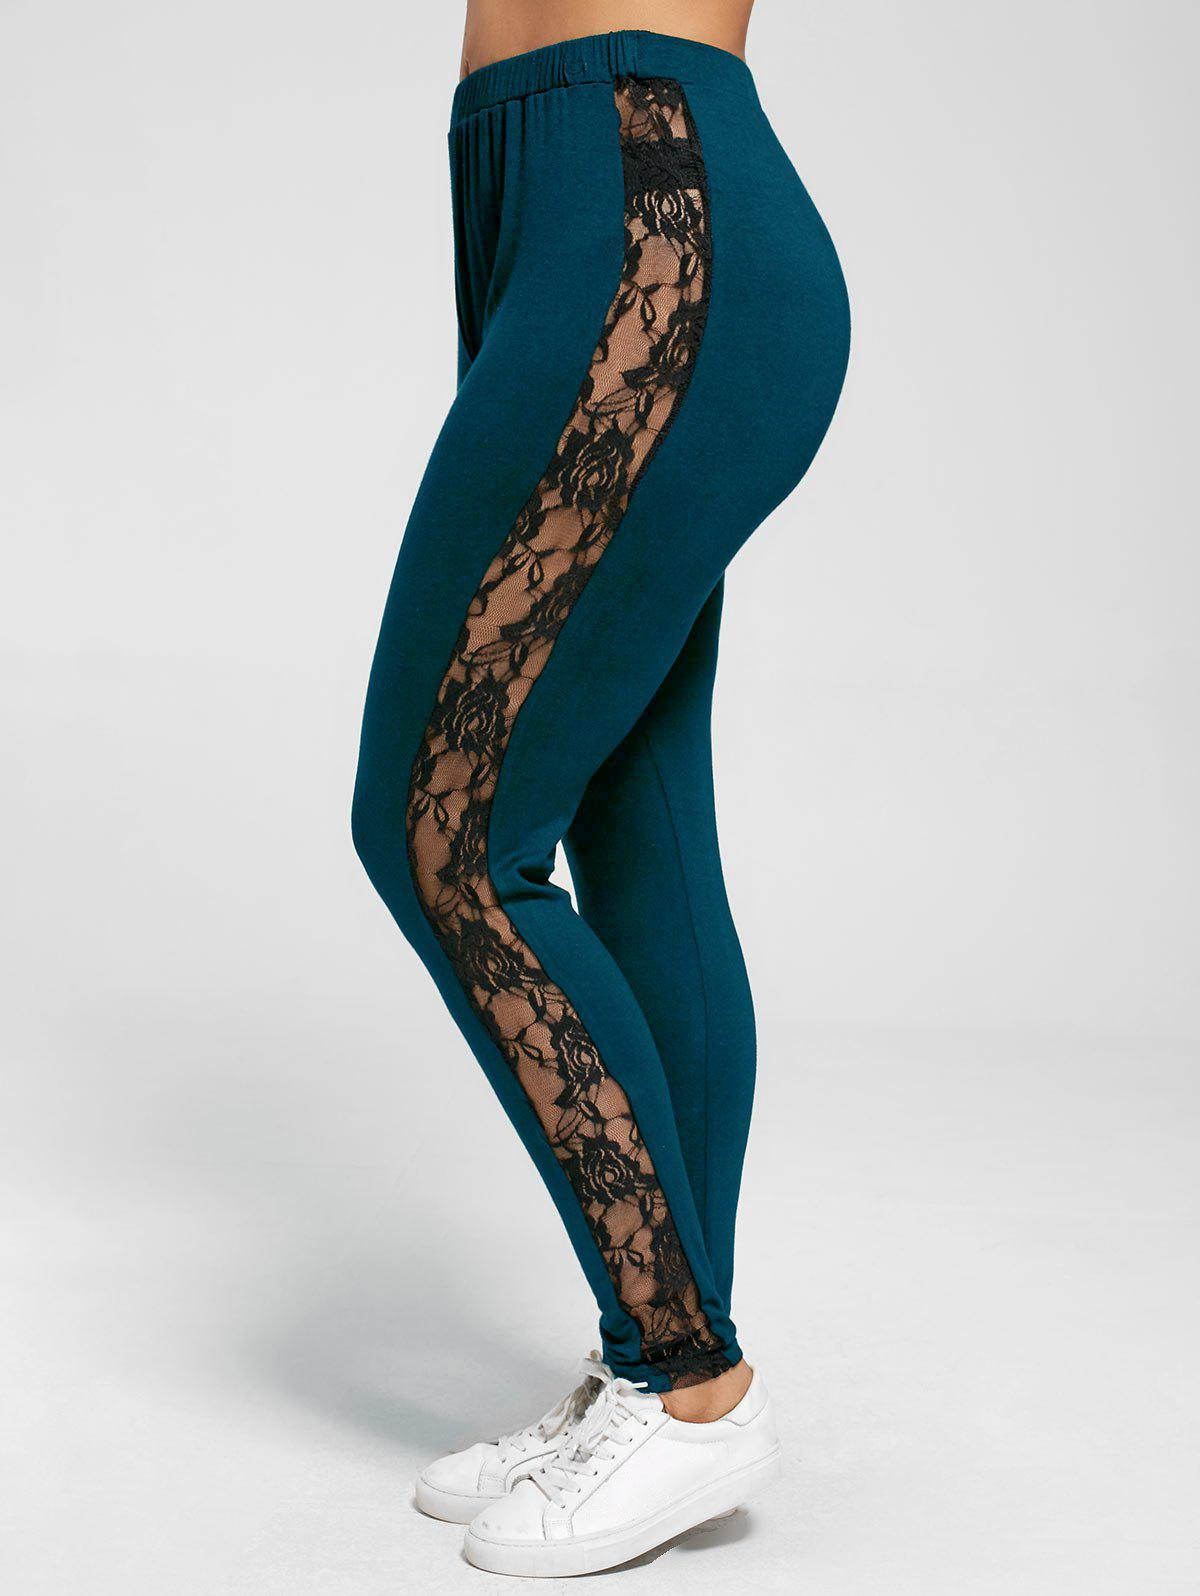 Plus Size Lace Trim Sheer LeggingsWOMEN<br><br>Size: 3XL; Color: PEACOCK BLUE; Style: Casual; Length: Normal; Material: Rayon,Spandex; Fit Type: Skinny; Waist Type: Mid; Closure Type: Elastic Waist; Pattern Type: Floral; Embellishment: Lace; Pant Style: Pencil Pants; Weight: 0.2700kg; Package Contents: 1 x Leggings;